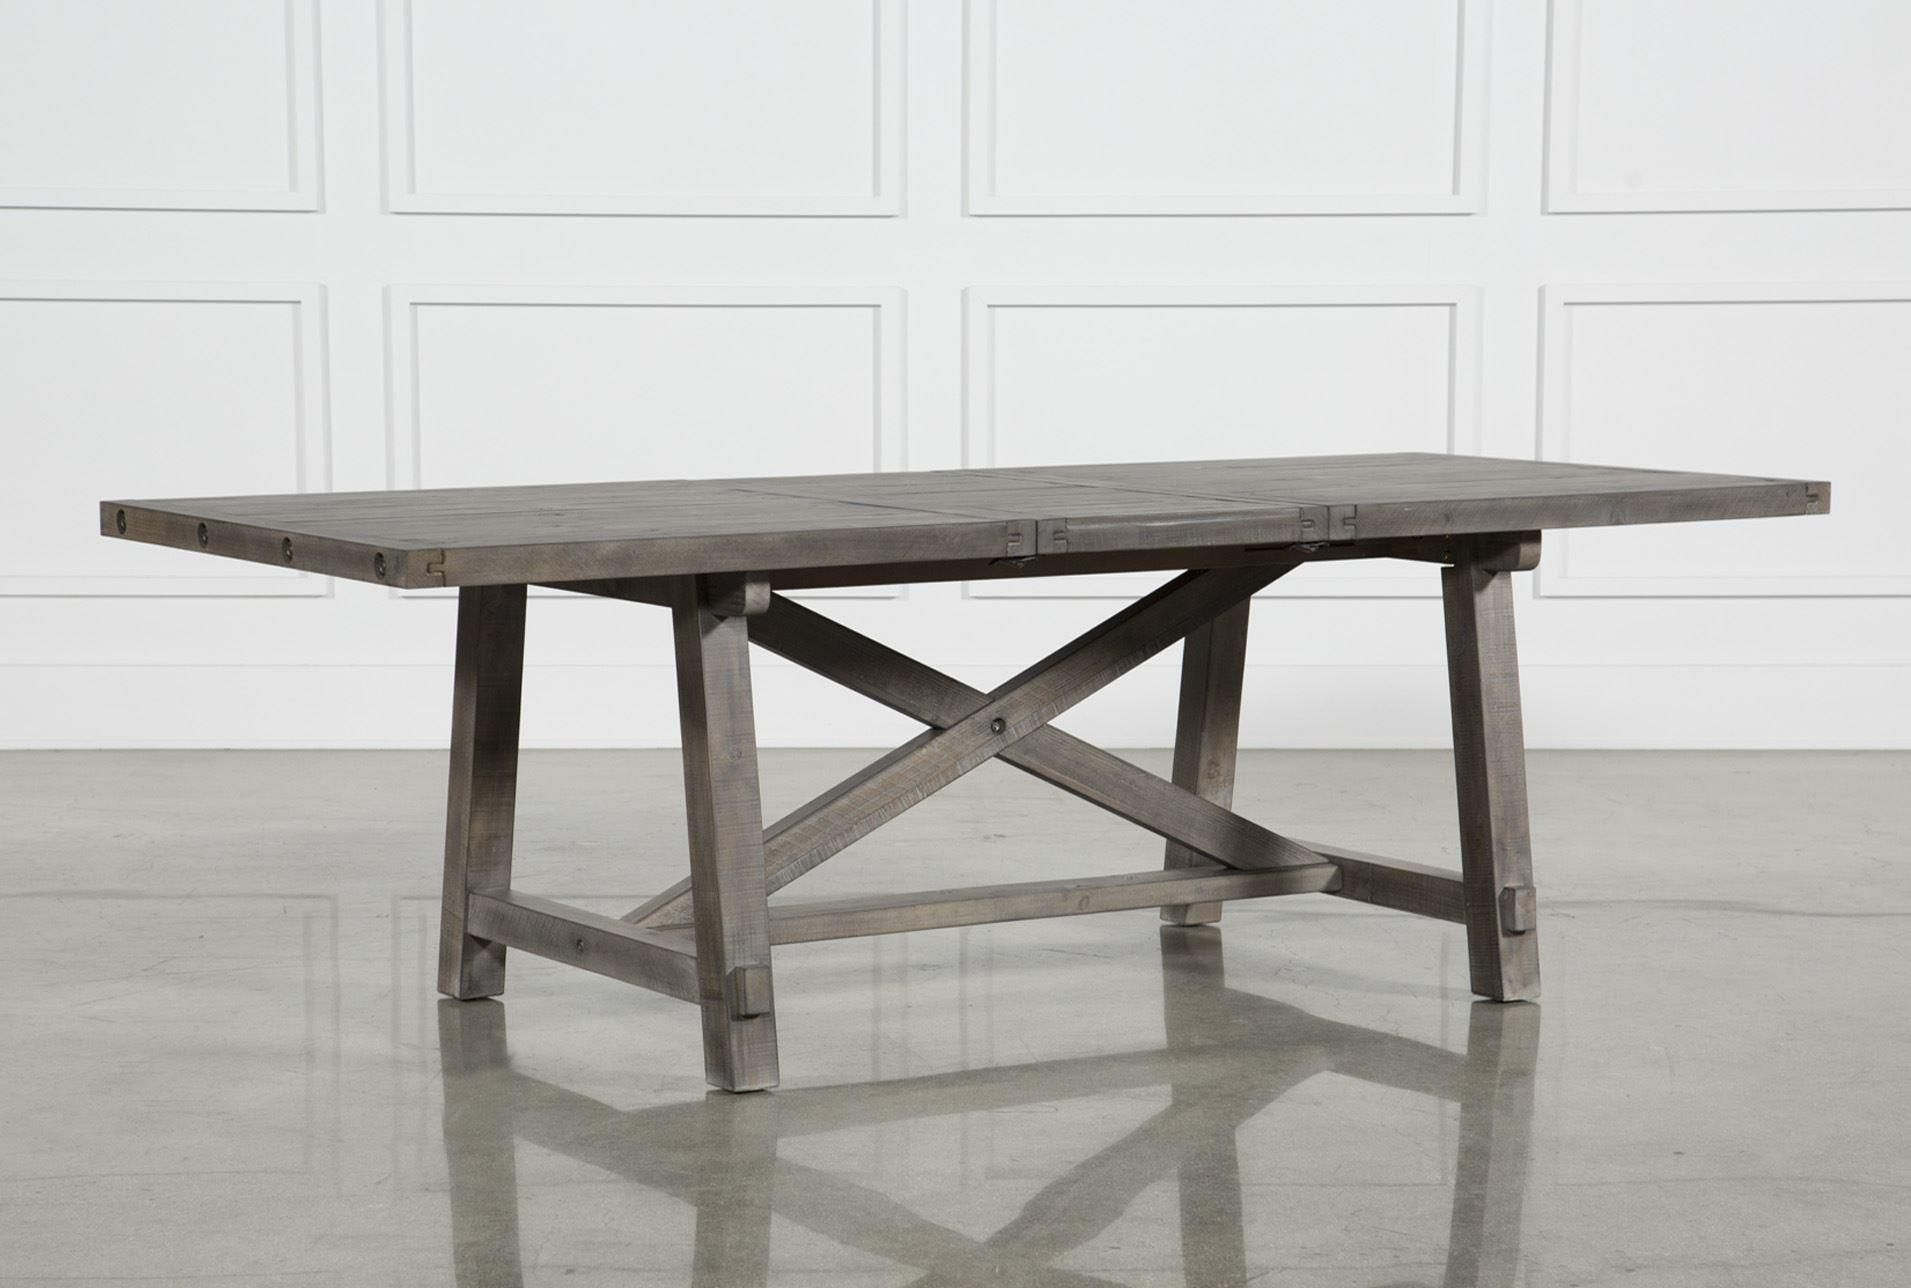 Jaxon Grey Rectangle Extension Dining Table | Future Furniture In Best And Newest Pelennor Extension Dining Tables (Image 4 of 20)